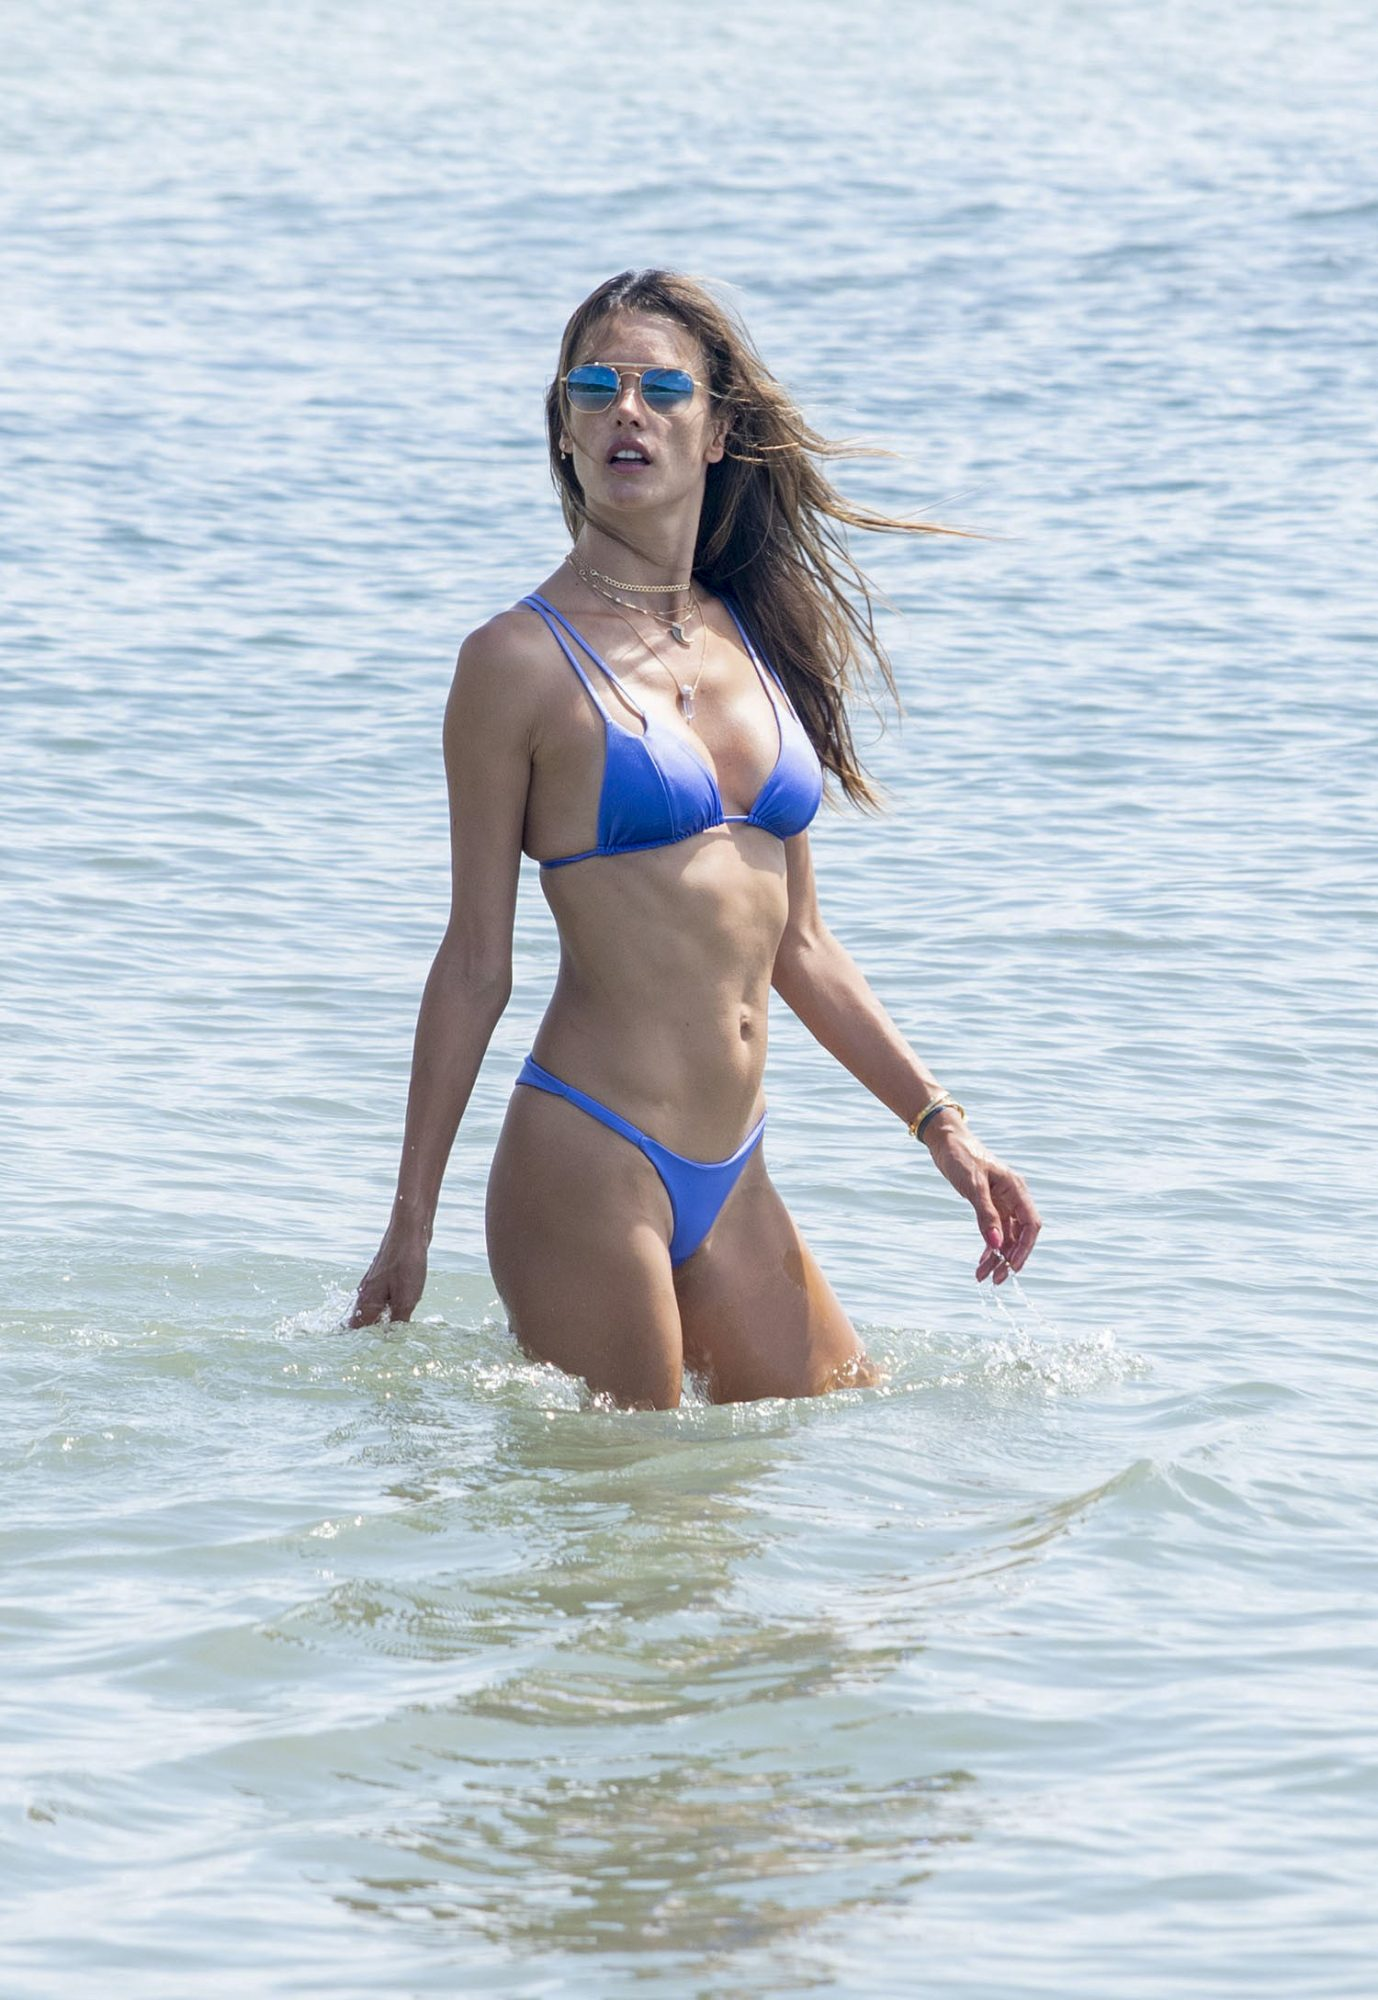 Alessandra Ambrosio Shows Off Her Flawless Physique in Tiny Blue Bikini brasil